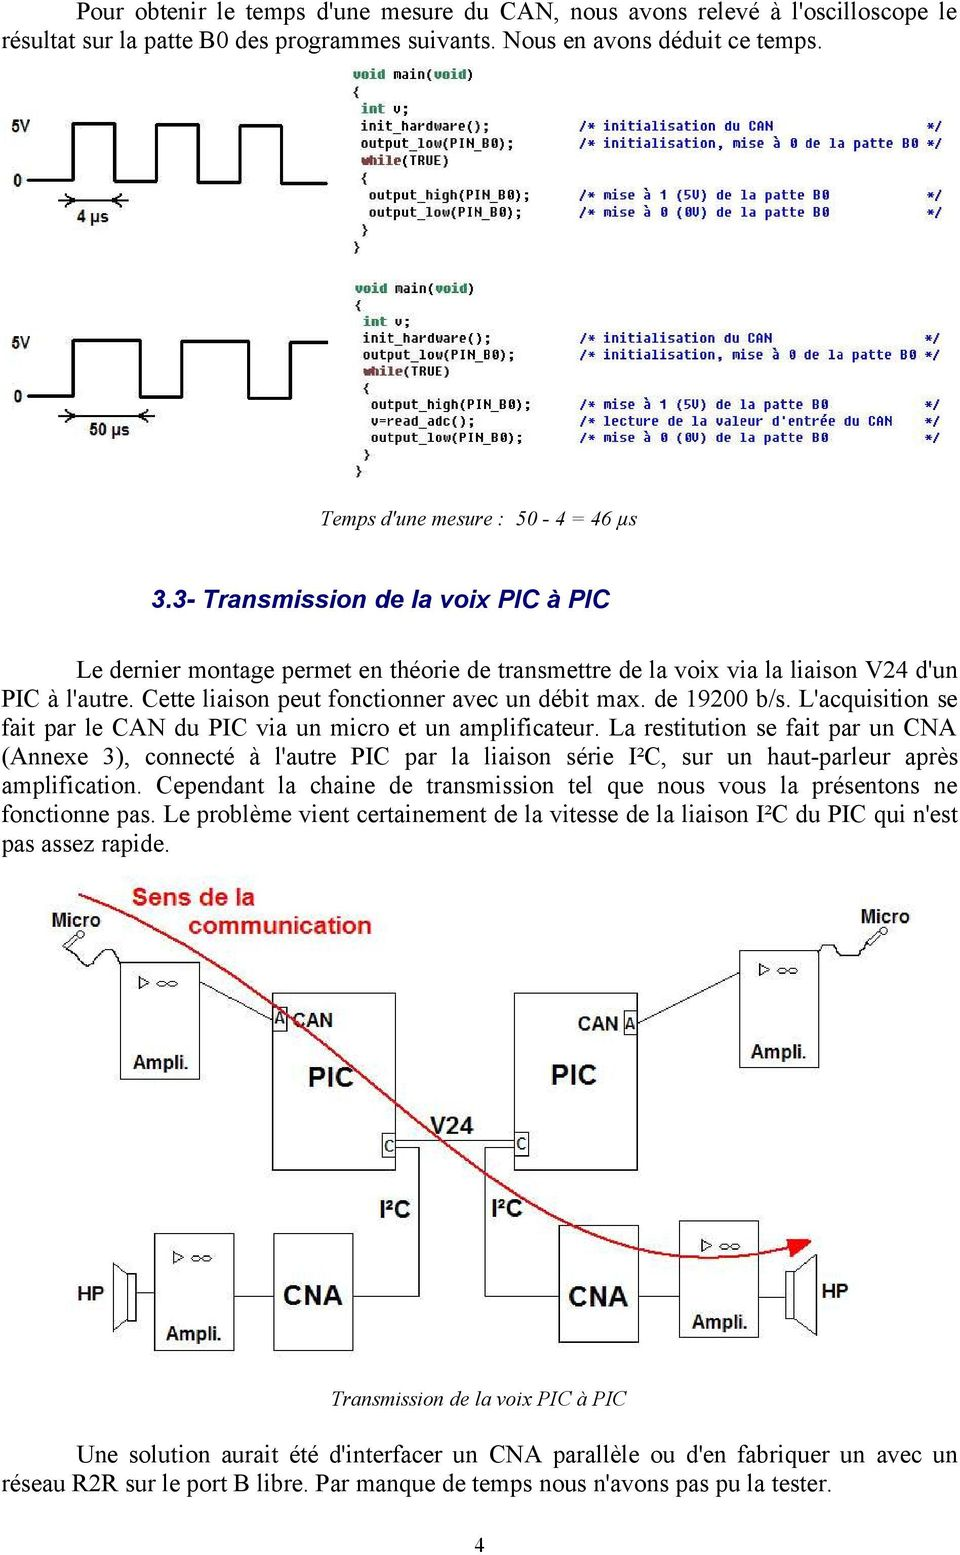 de 19200 b/s. L'acquisition se fait par le CAN du PIC via un micro et un amplificateur.